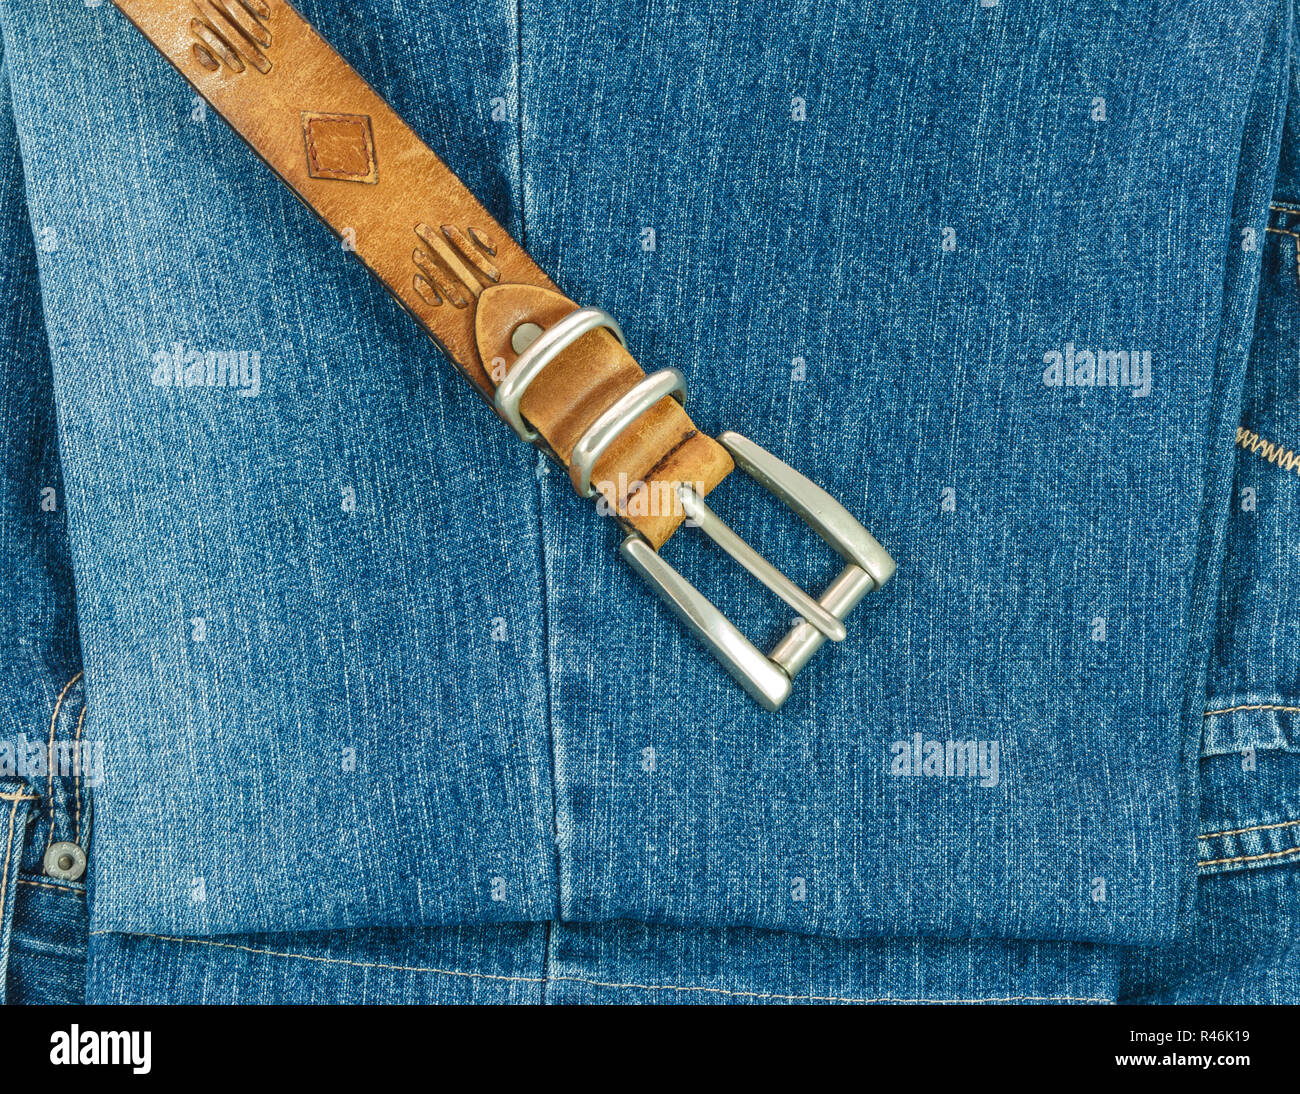 Vintage leather belt with buckle on old blue jeans background - Stock Image